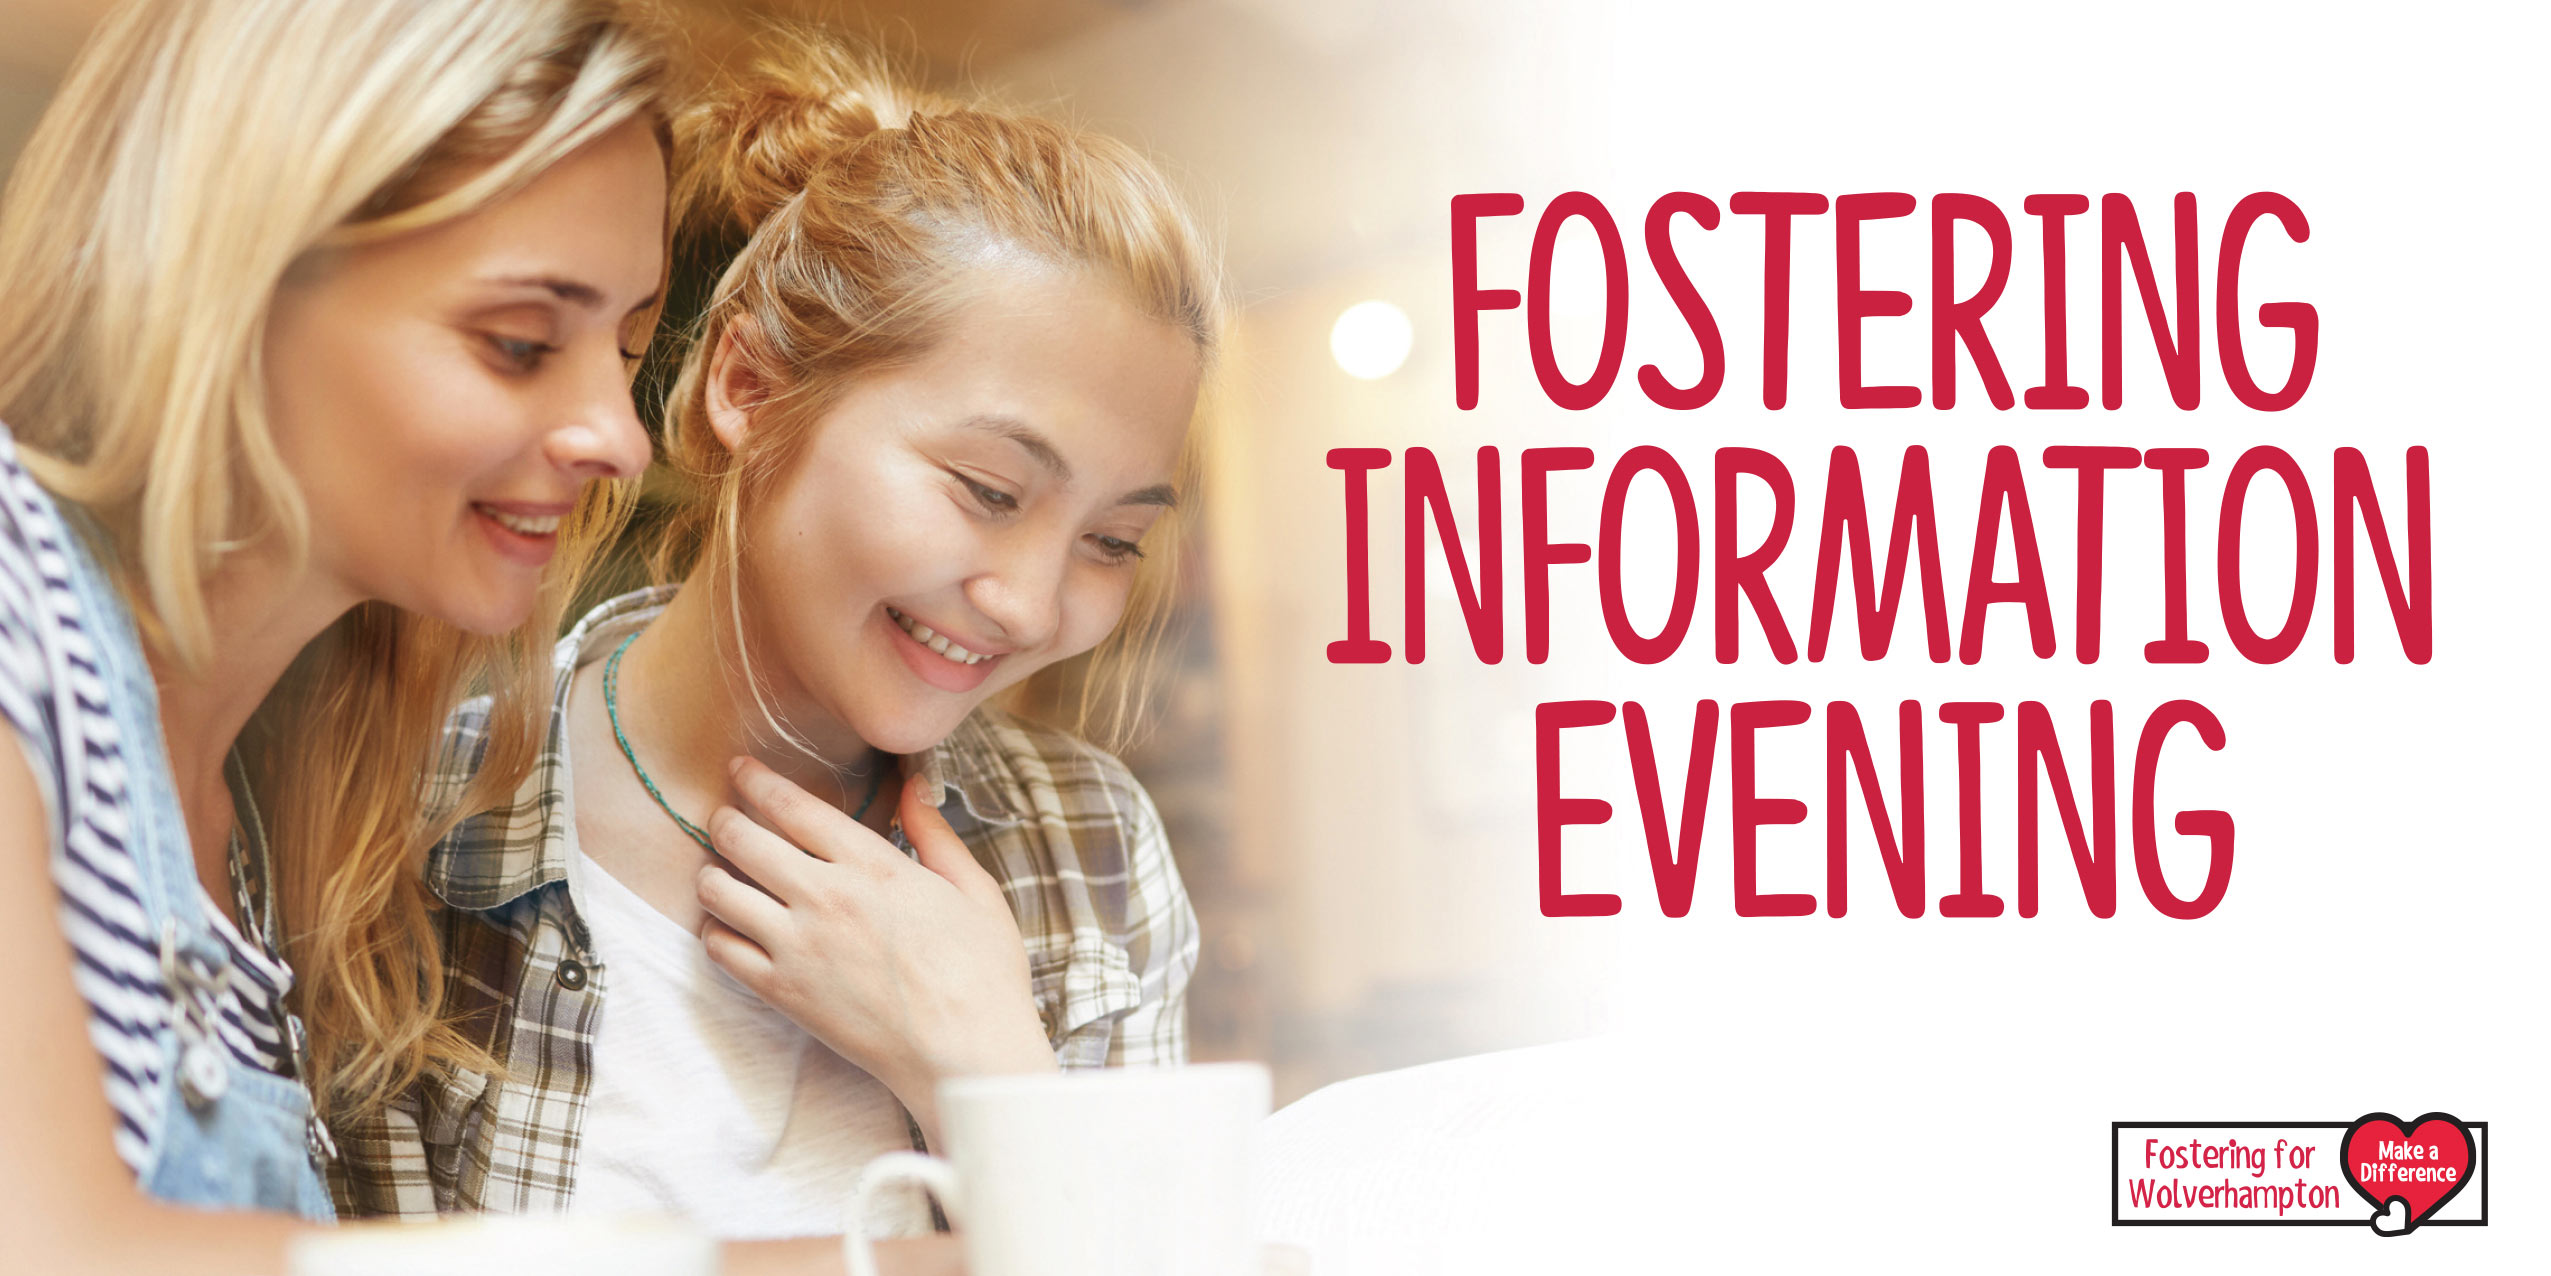 Fostering Events